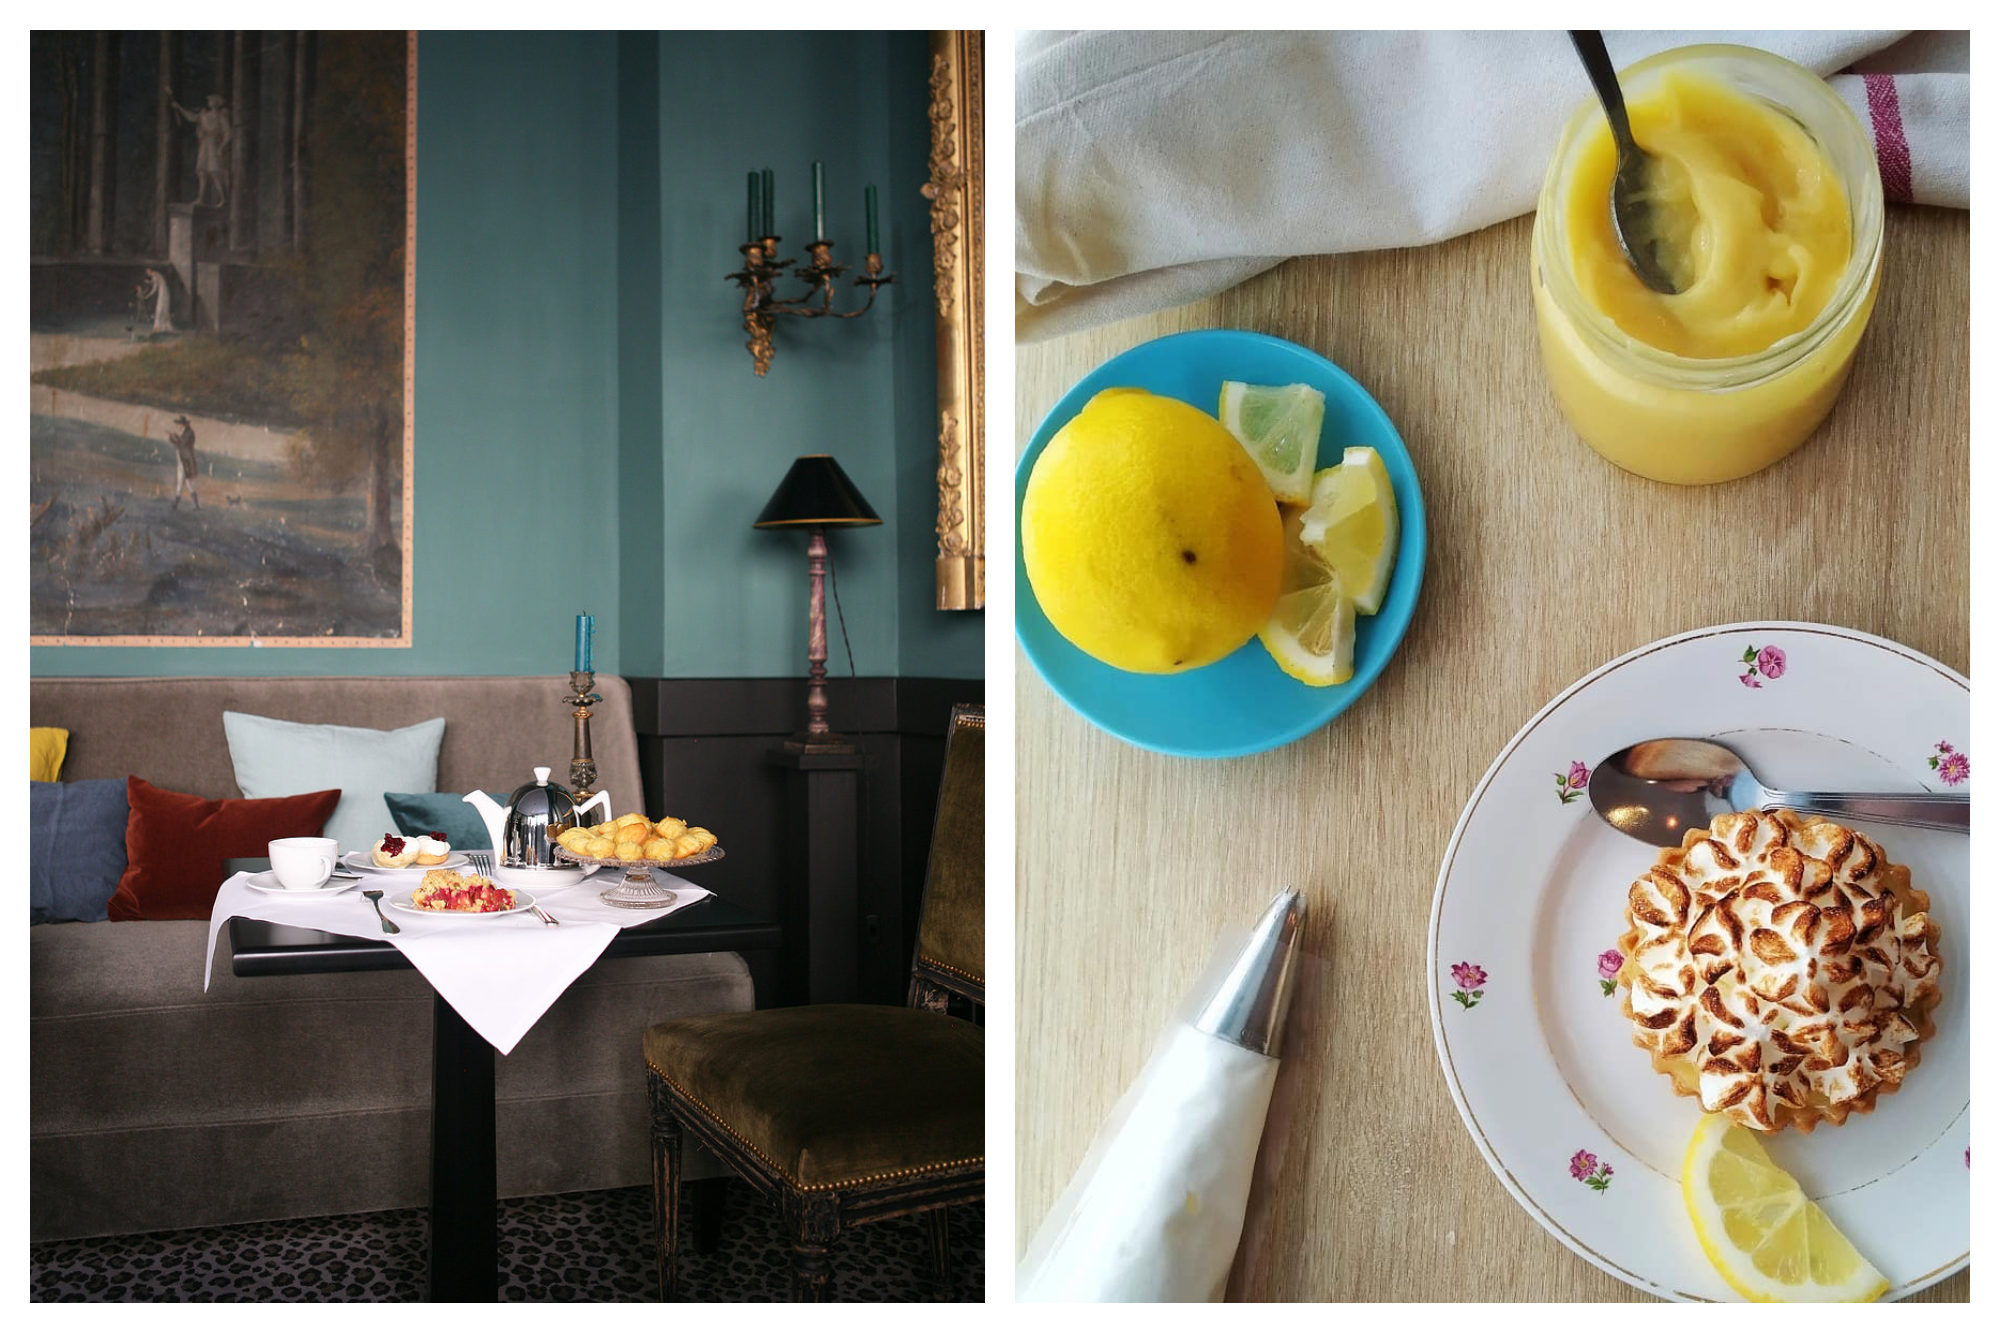 MIss Marple is a cozy spot for coffee and cake with its grey velvet couches and blue walls (left) as well as a Café CC for its lemon curd tart (right).